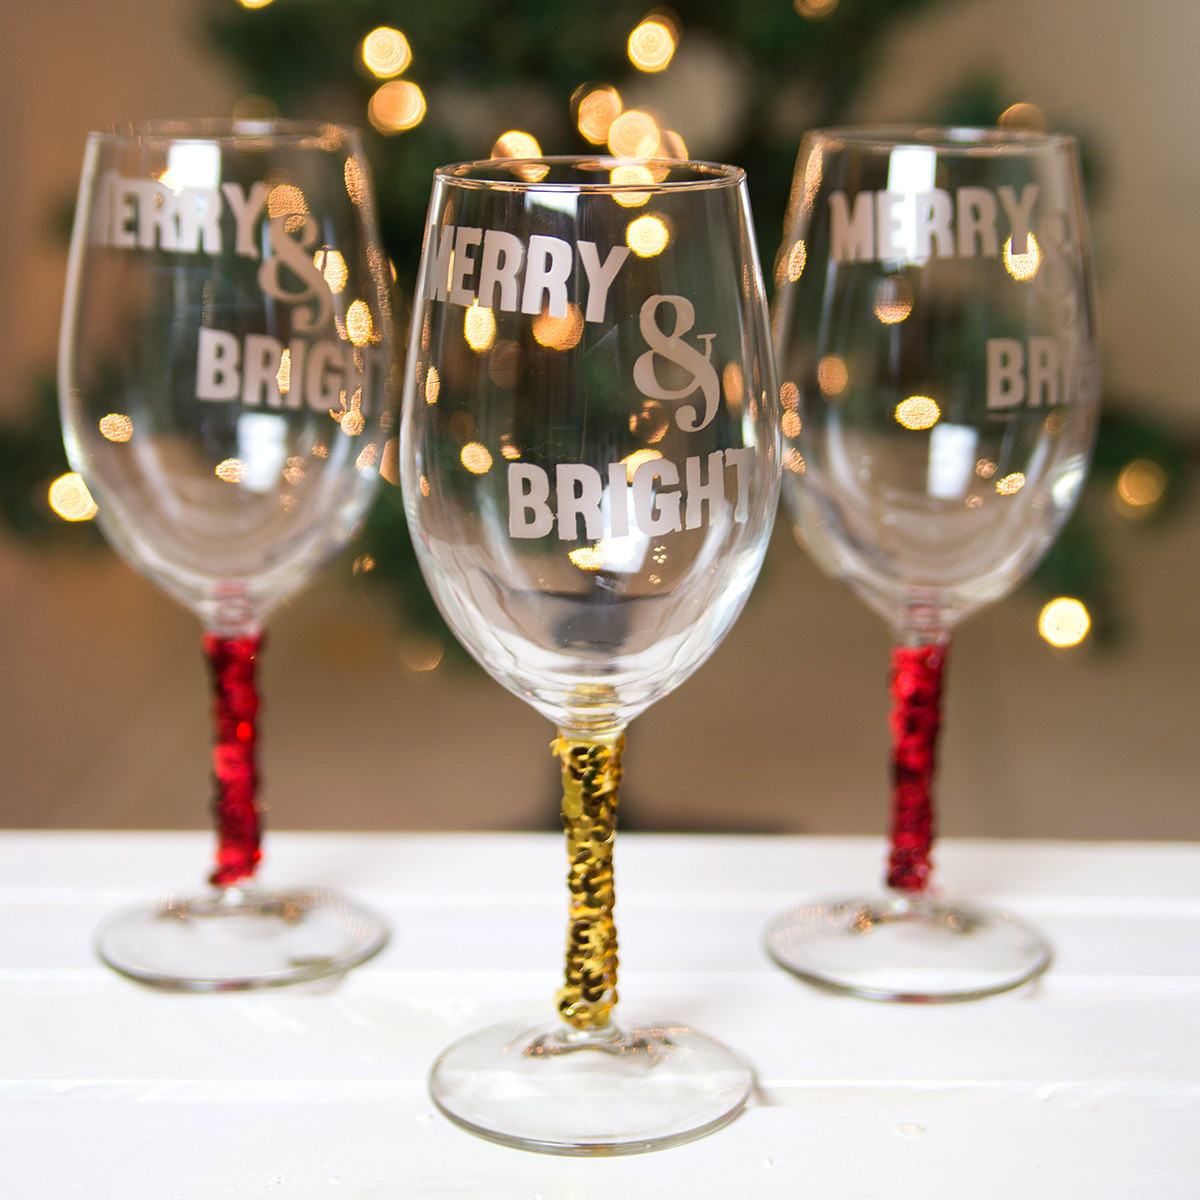 Best ideas about DIY Christmas Wine Glasses . Save or Pin DIY Christmas Wine Glasses Now.